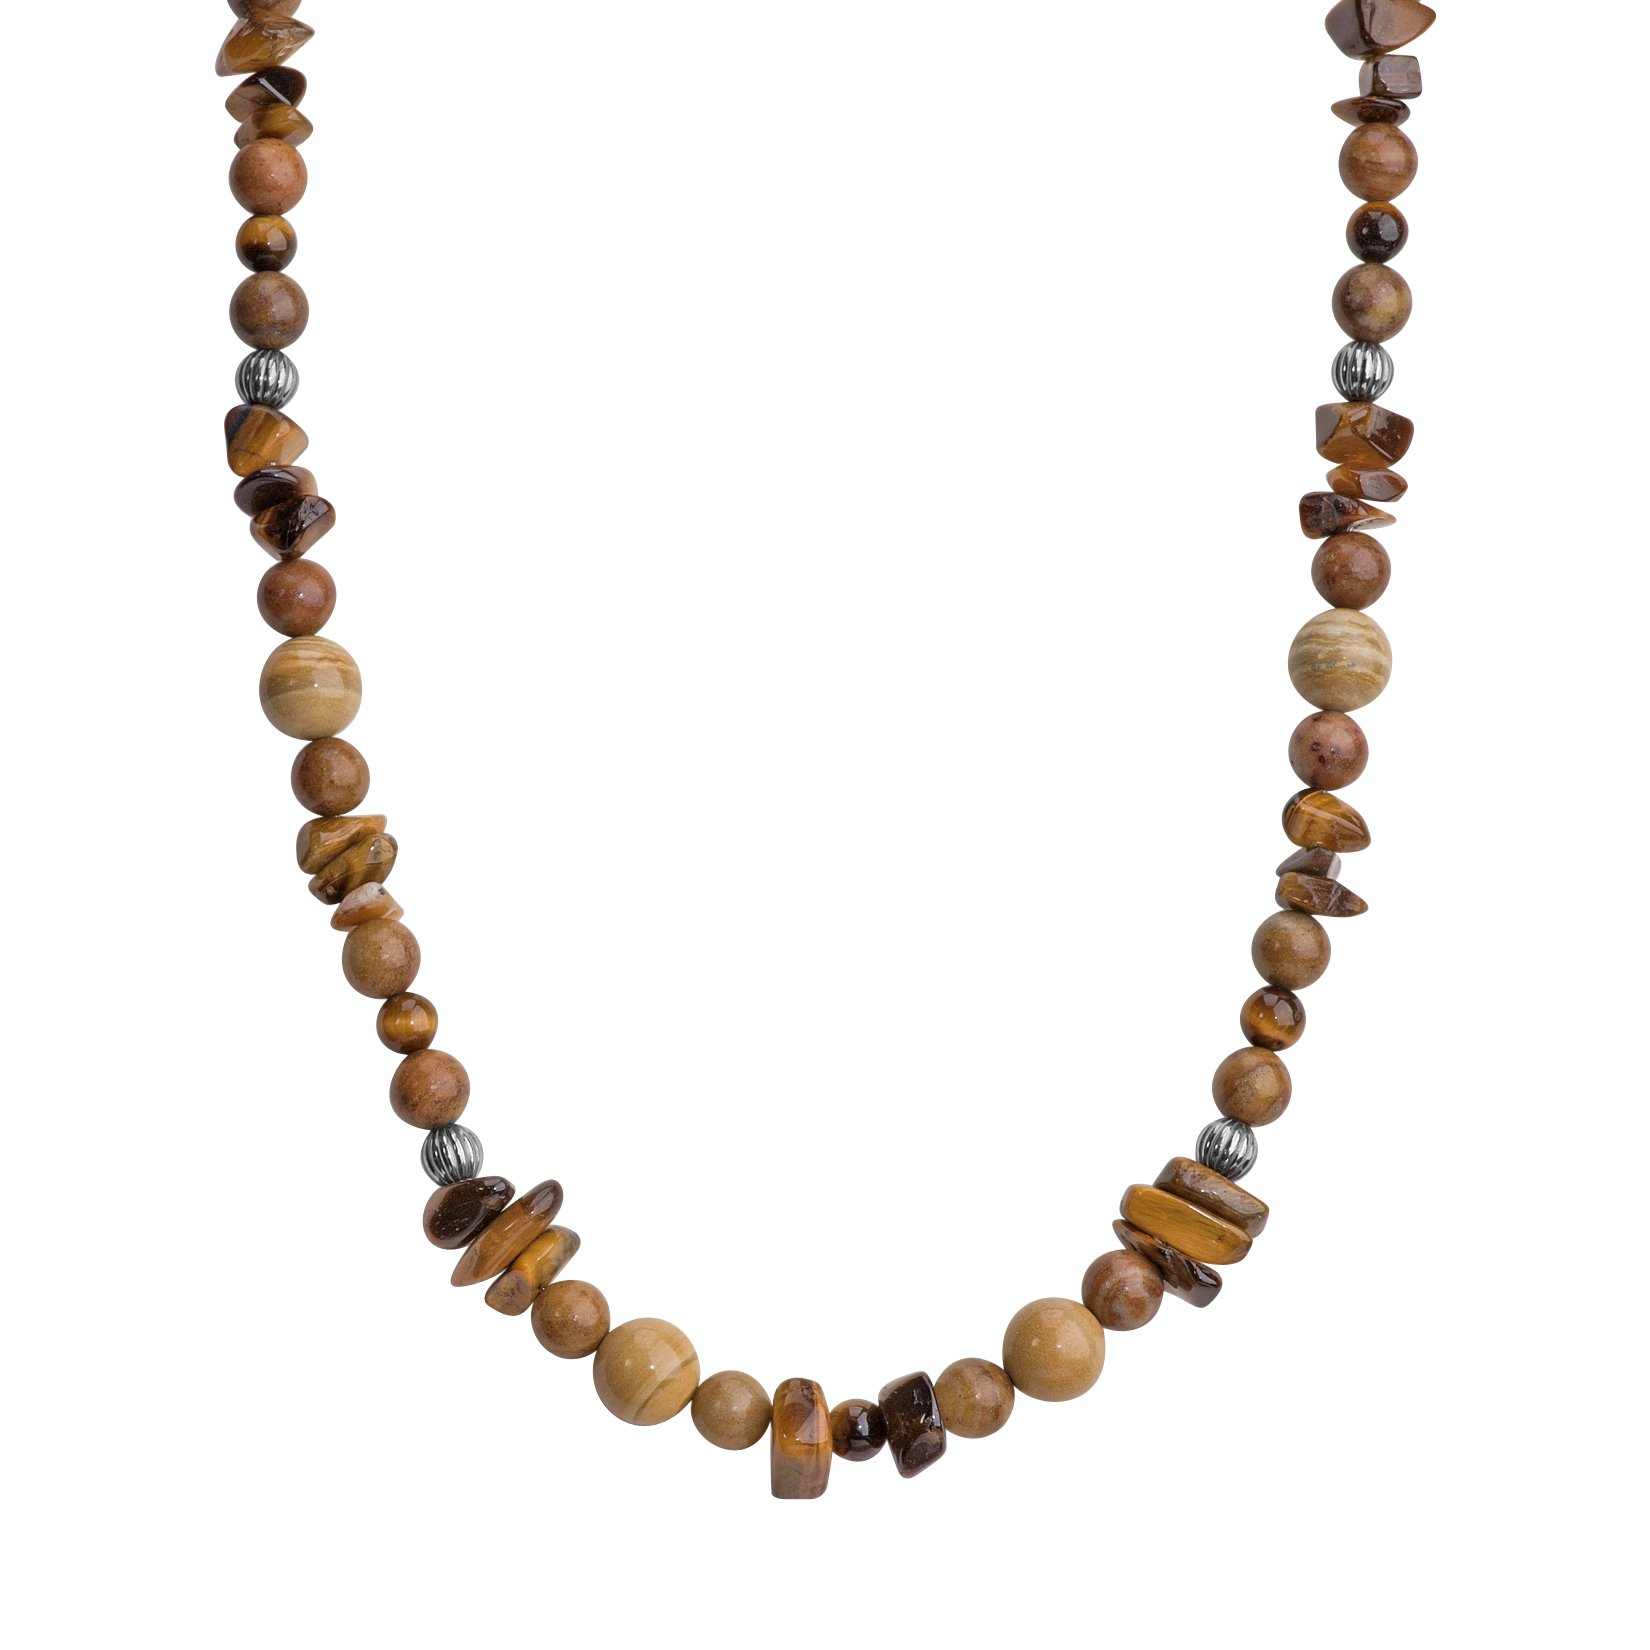 American West Jewelry Sterling Silver Shades of Brown Beaded Necklace, 30'' by American West